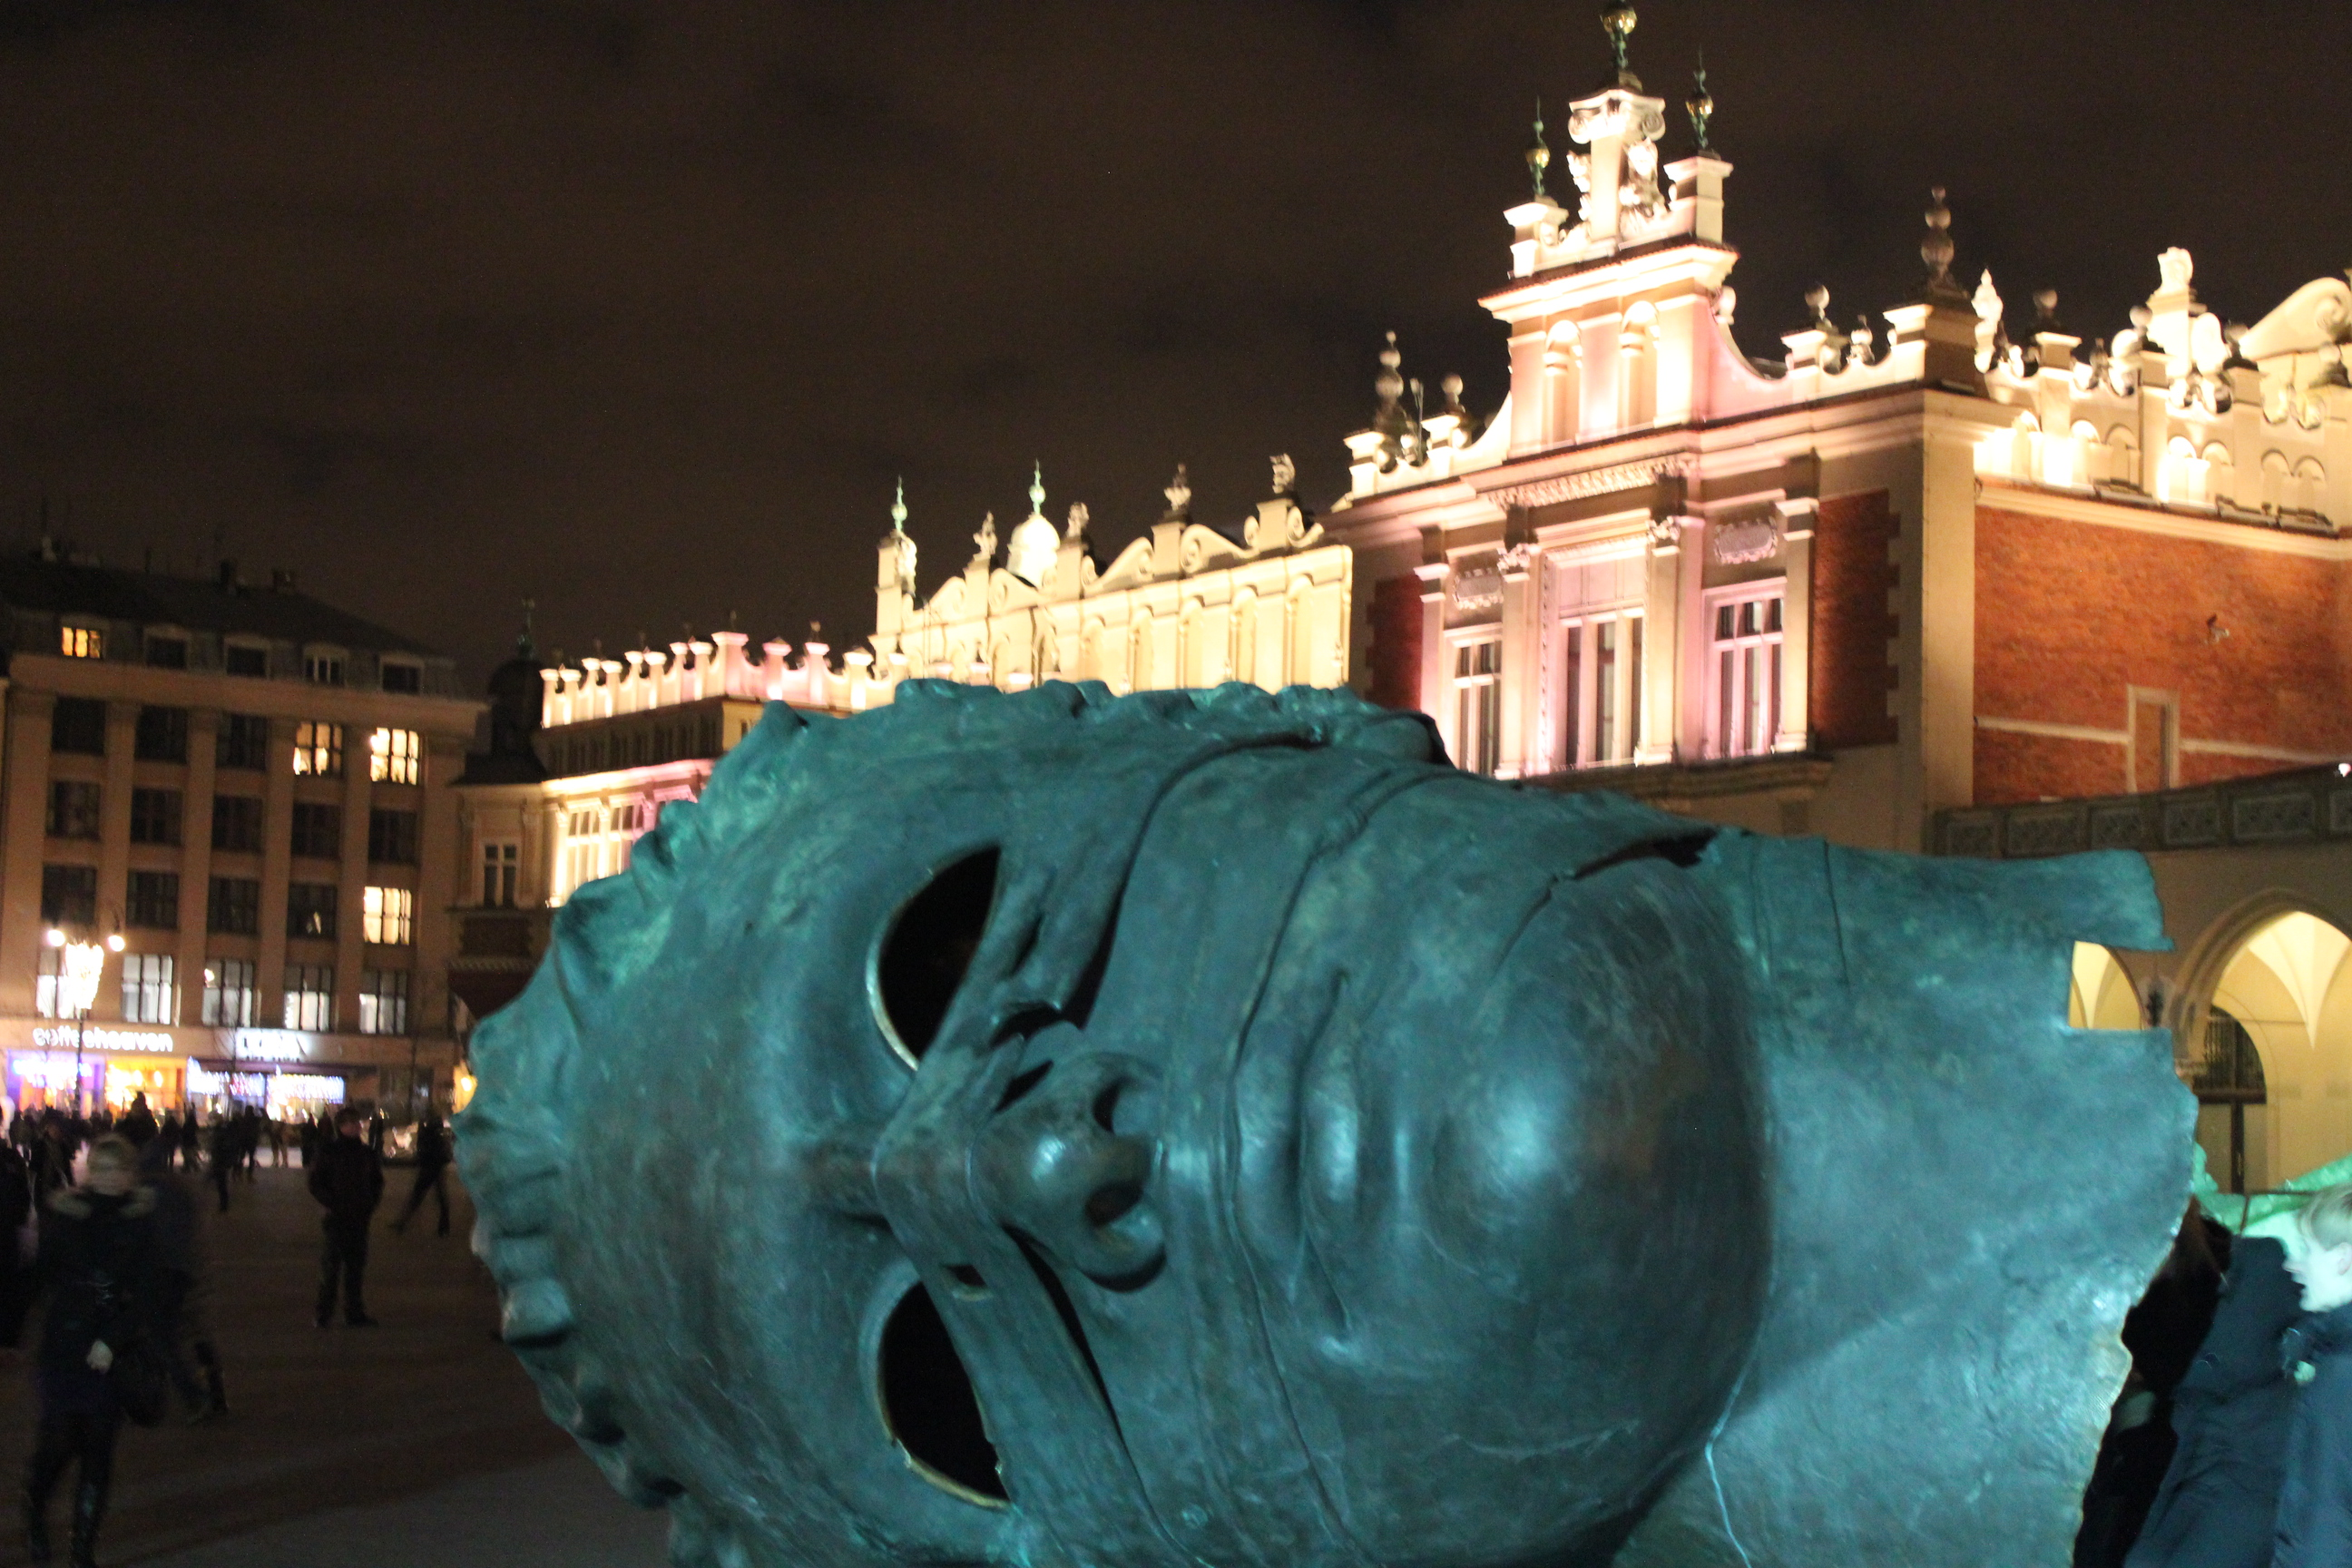 Giant Head with Building; Krakow, Poland; 2011